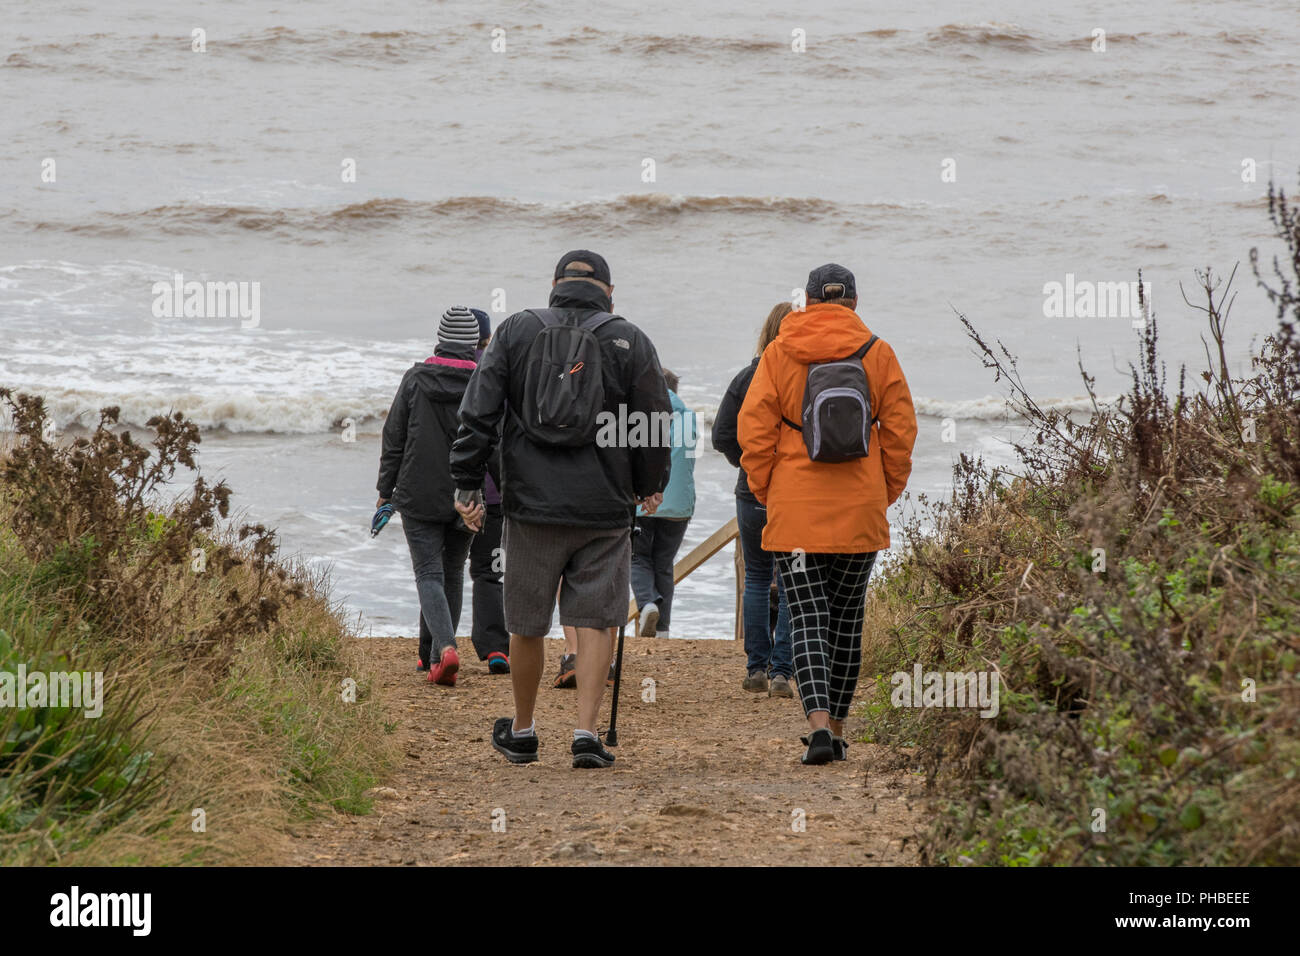 older or middle aged walkers on the isle of wight coastal path at chale on the isle of wight coastline or shoreline. - Stock Image